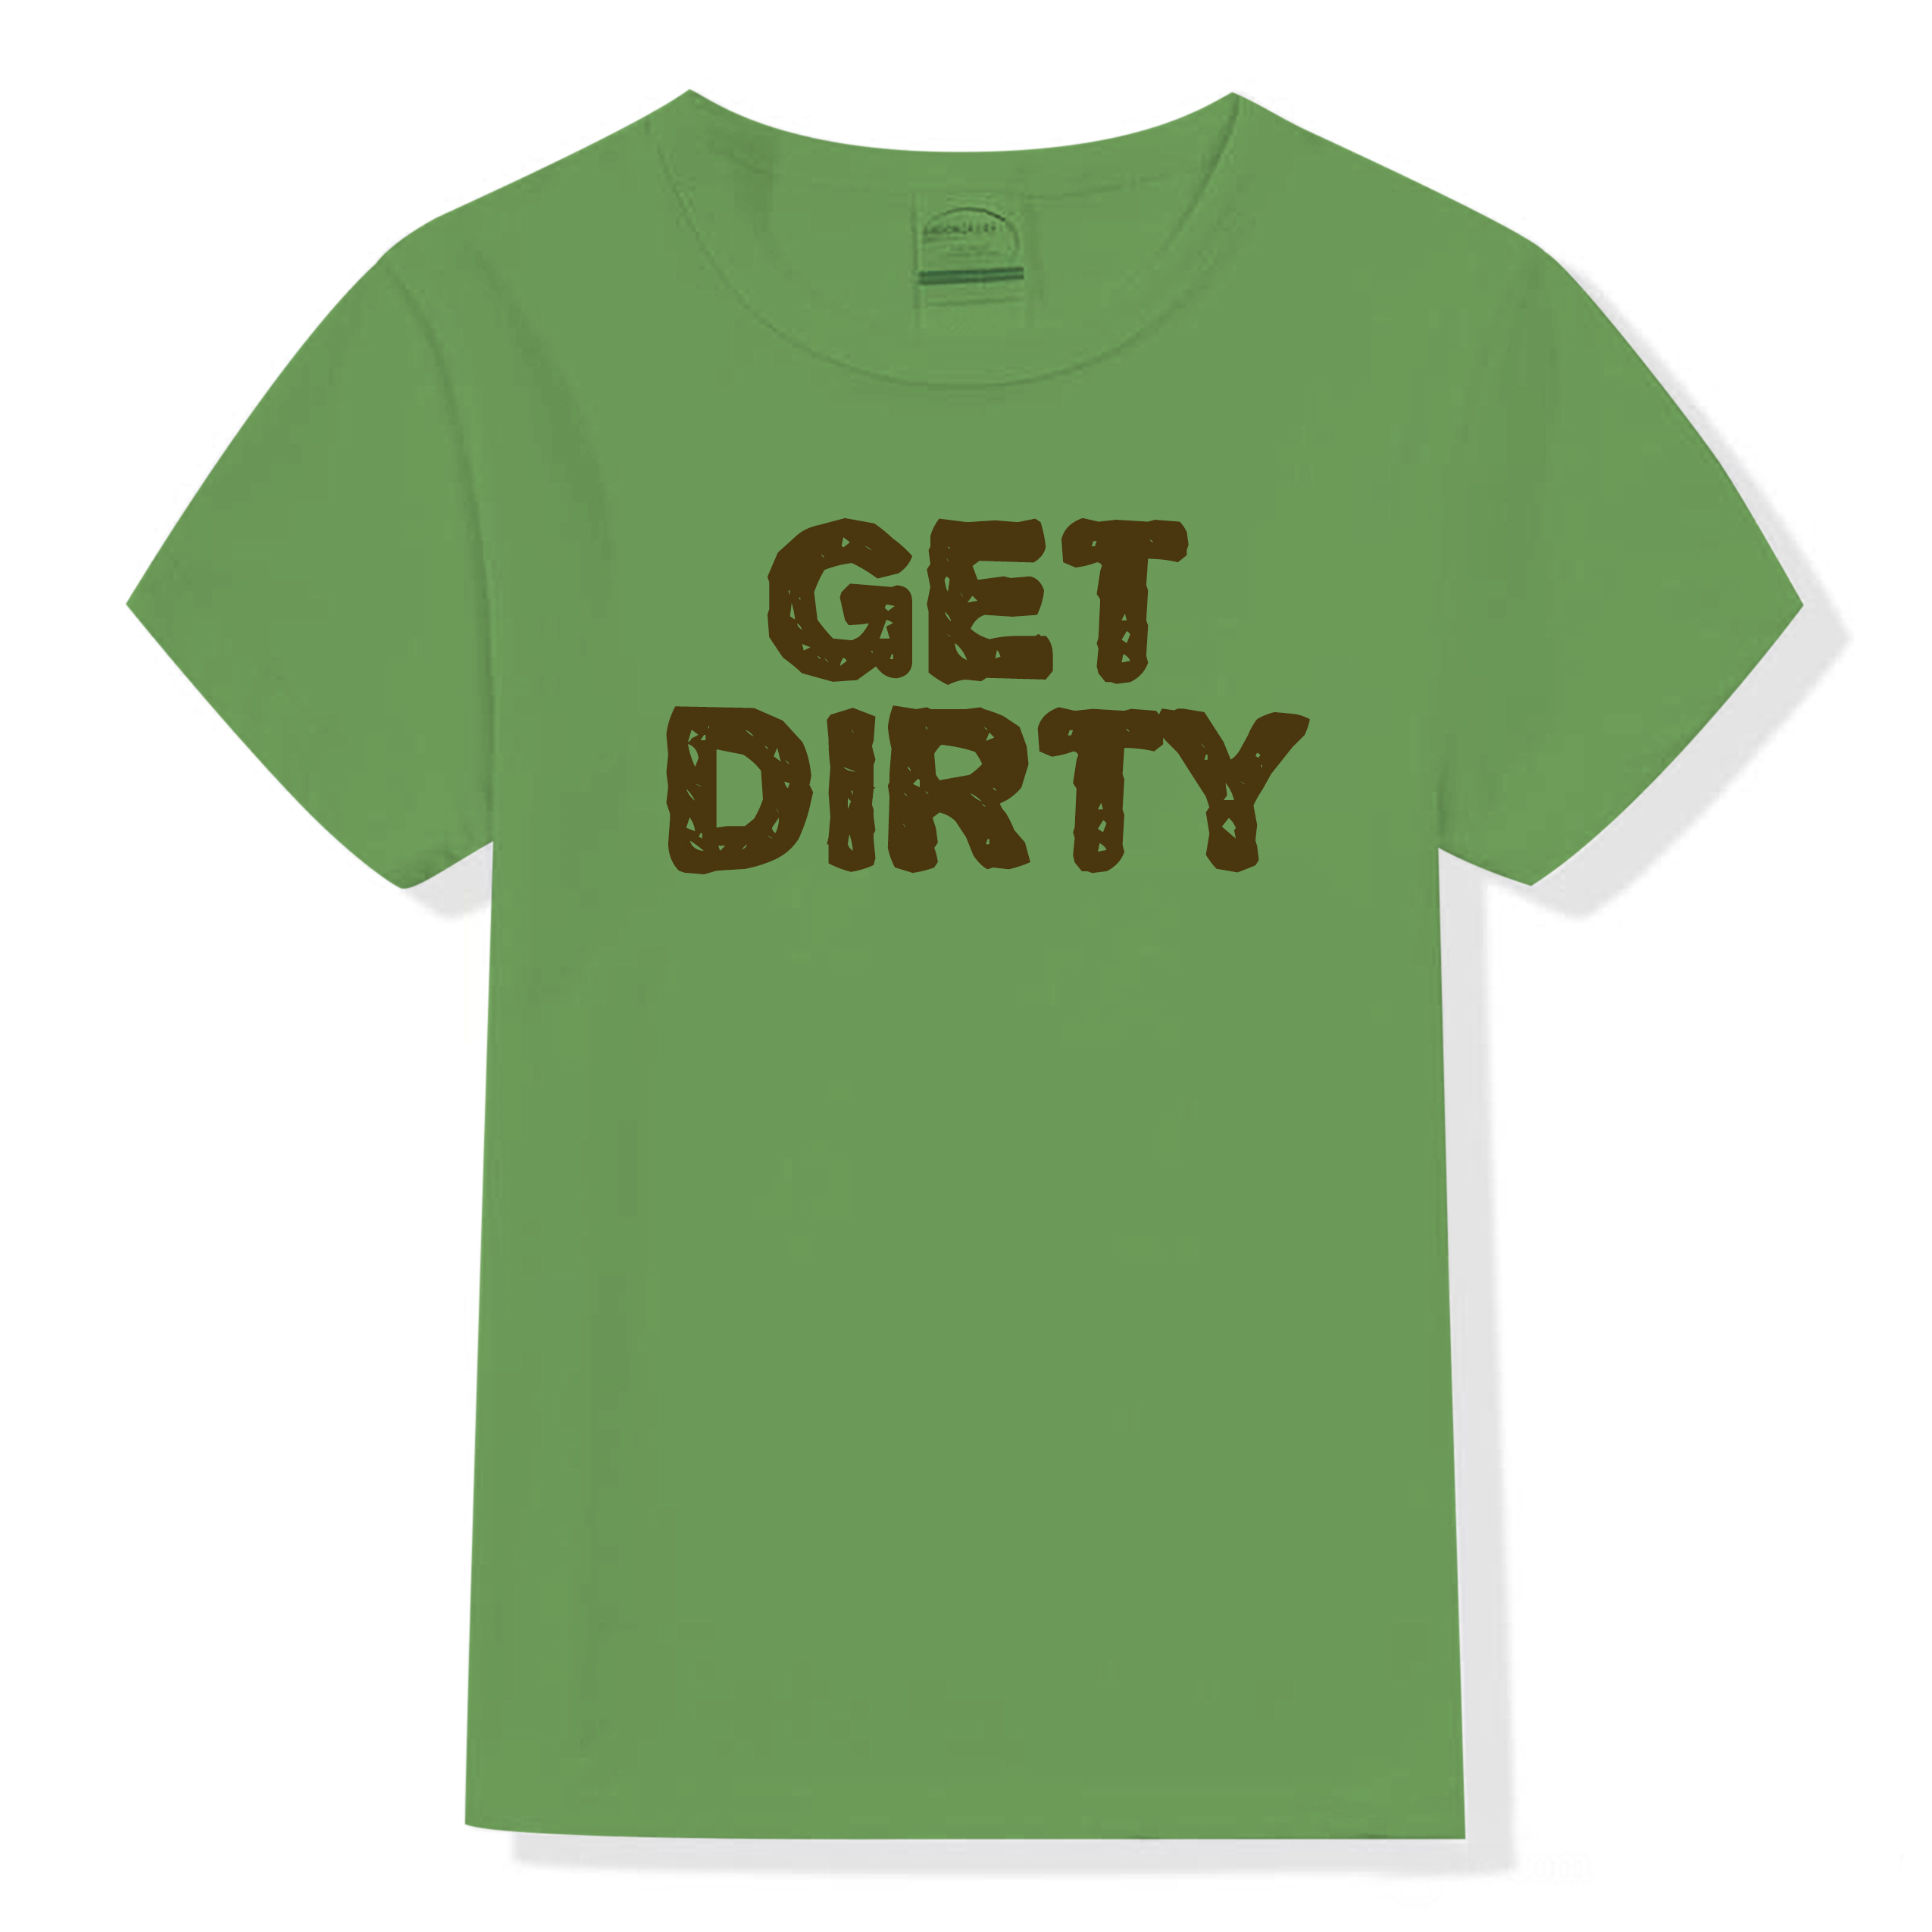 "Garner grows tee shirt with slogan ""Get Dirty"""